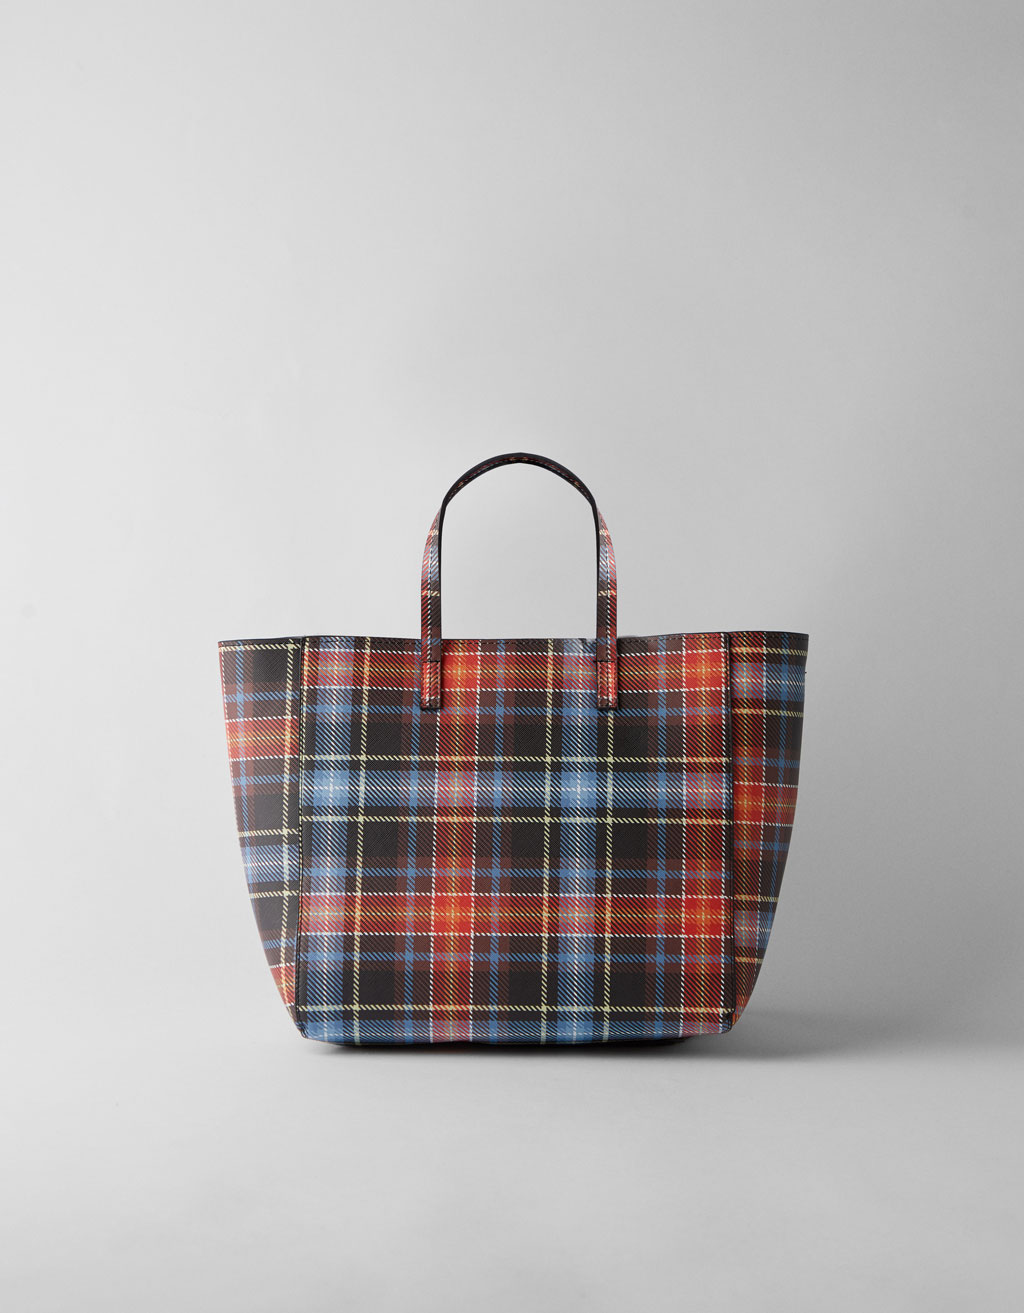 Checked tote bag